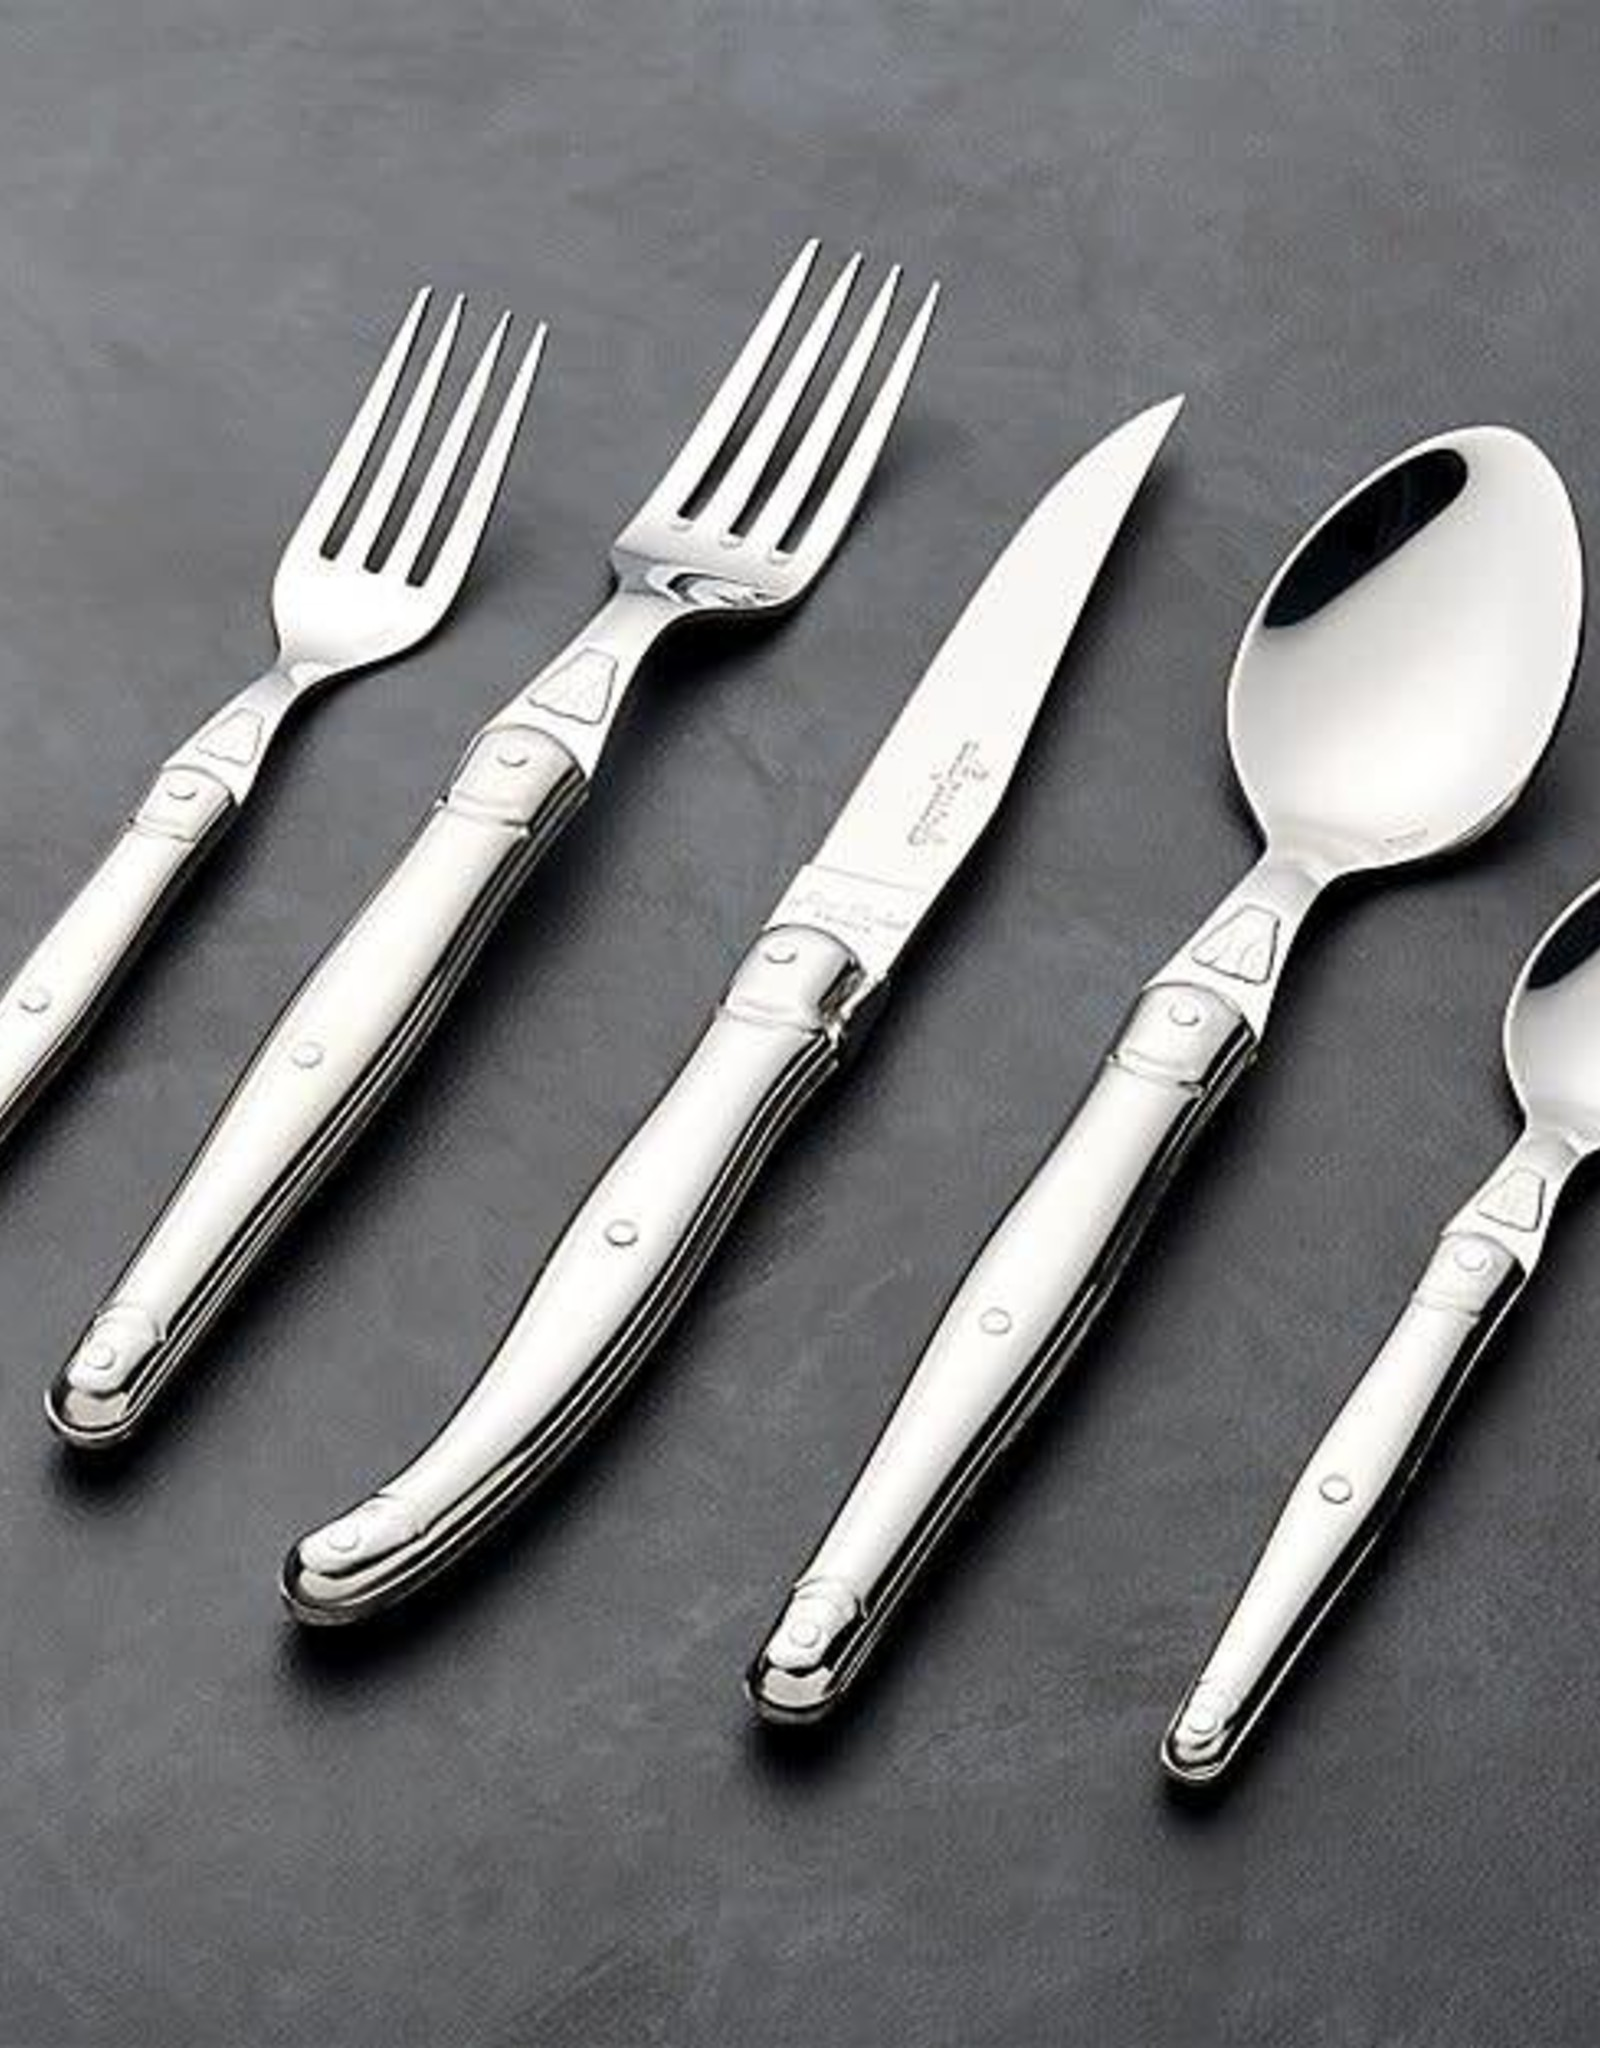 Utensils Stainless Steel Set of 24 Pieces